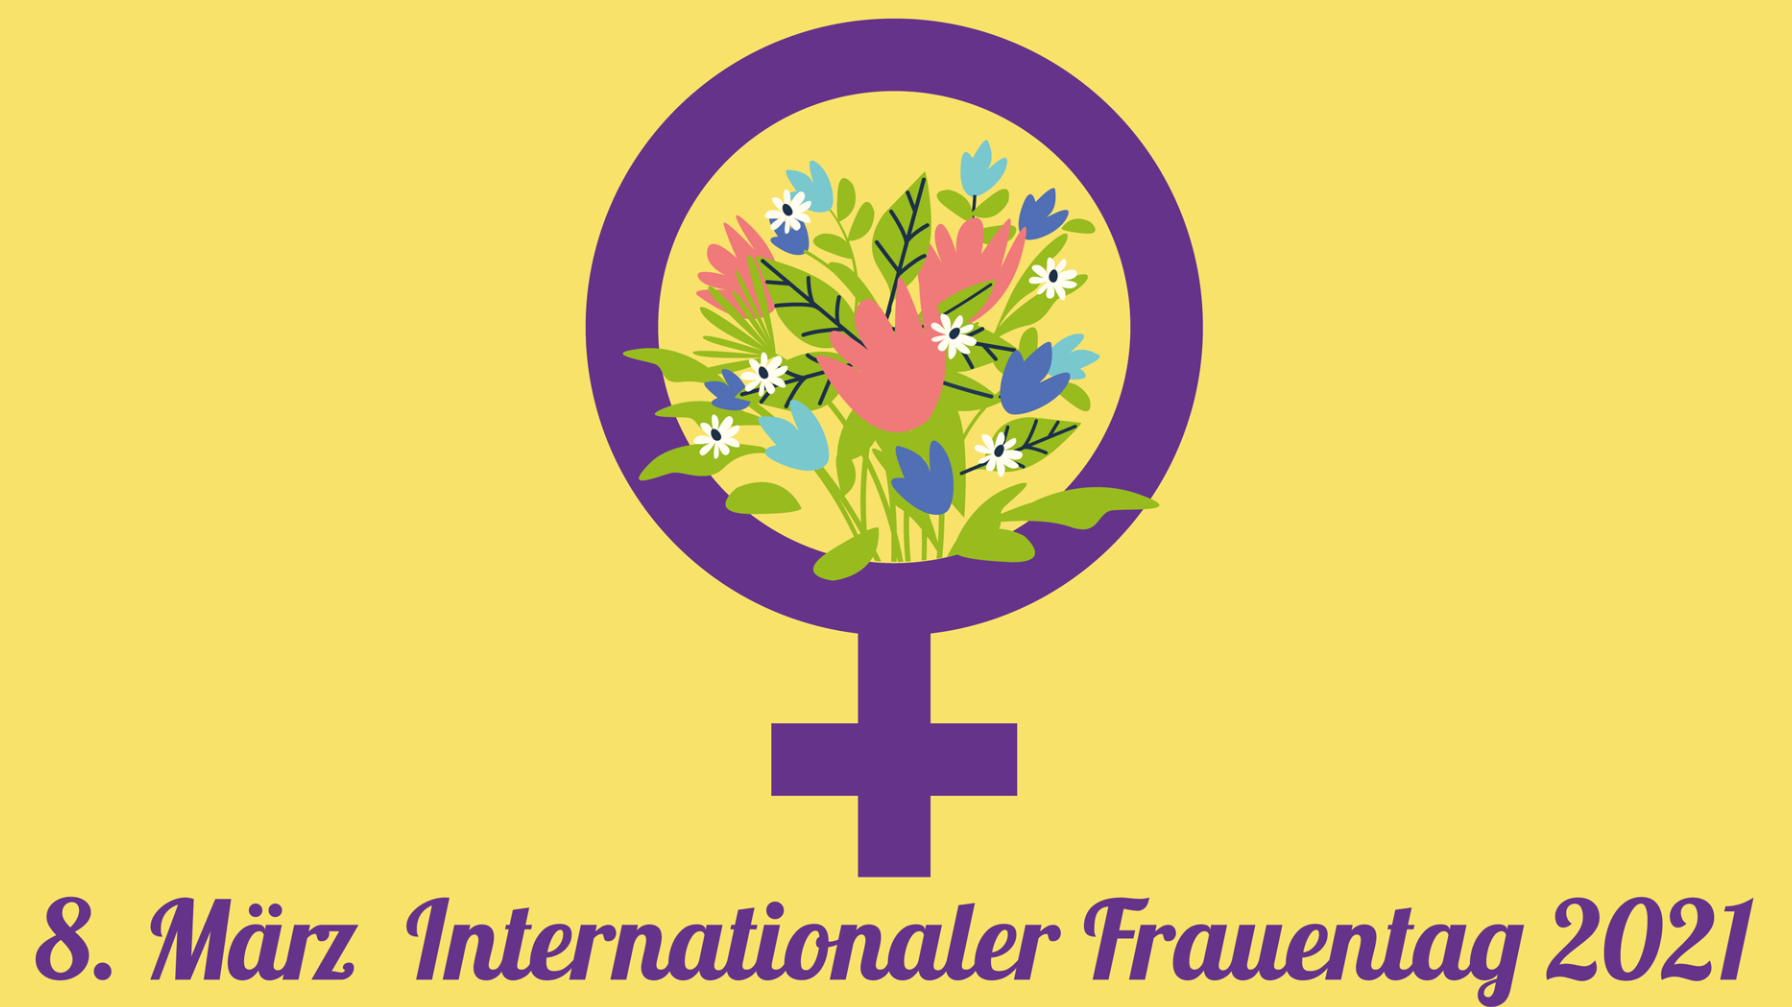 Internationaler Frauentag am 8. März 2021